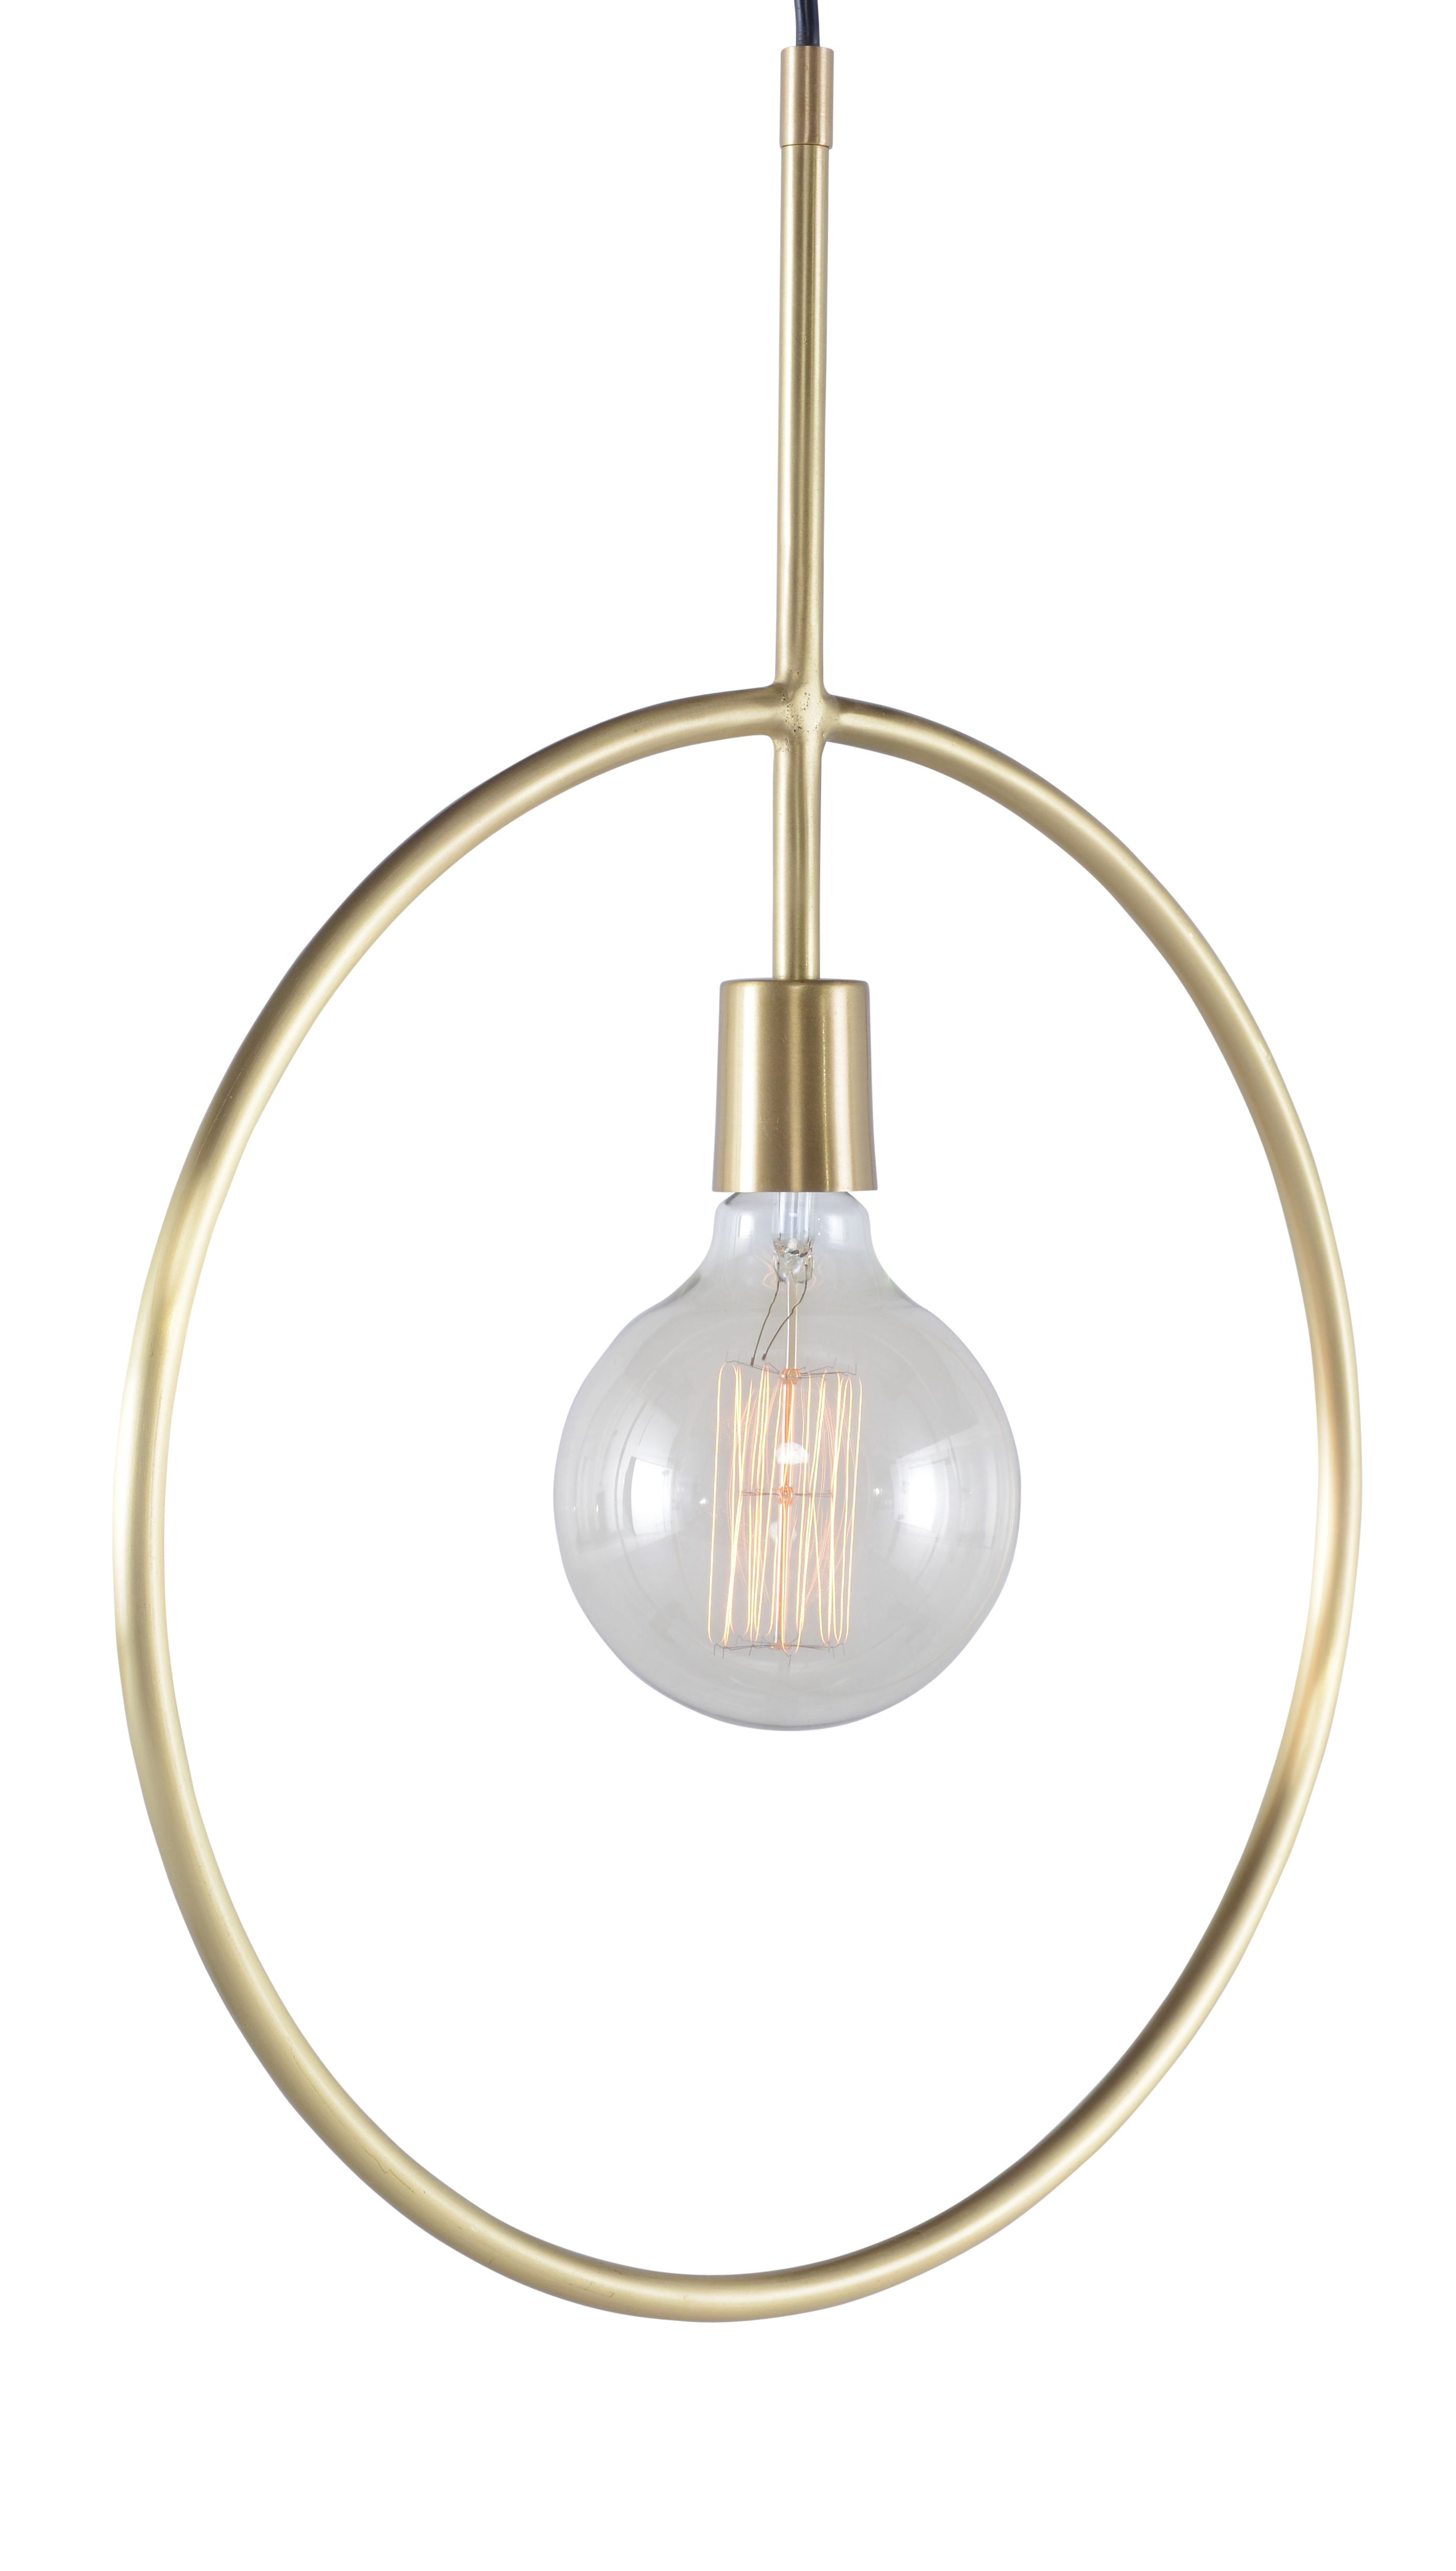 Glamour Meets Industrial Chic With The Nina Pendant A Gold